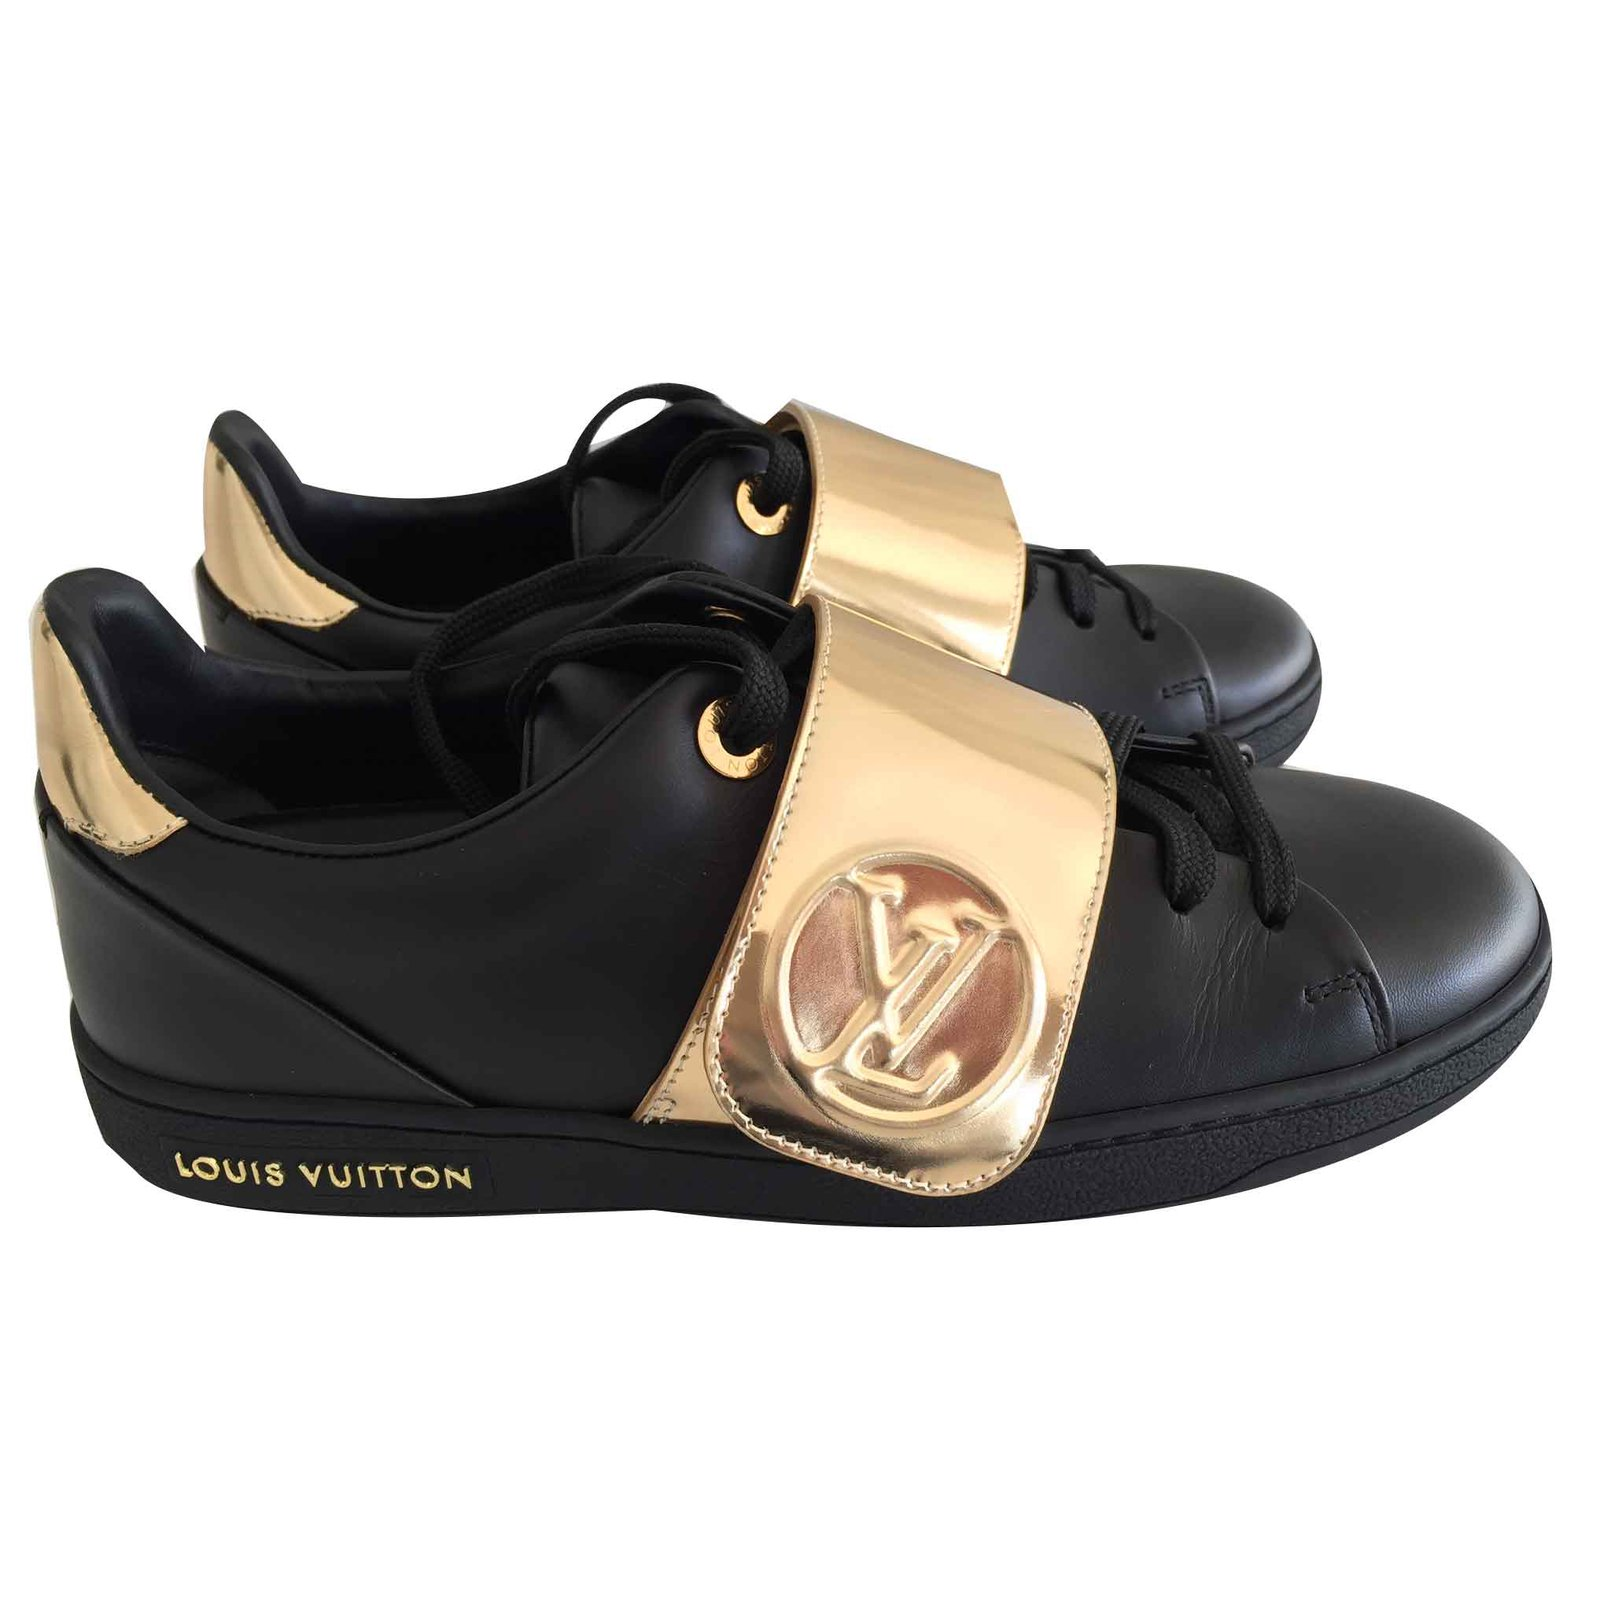 a99b63c2830d Louis Vuitton Frontrow sneaker Sneakers Leather Black ref.106407 ...